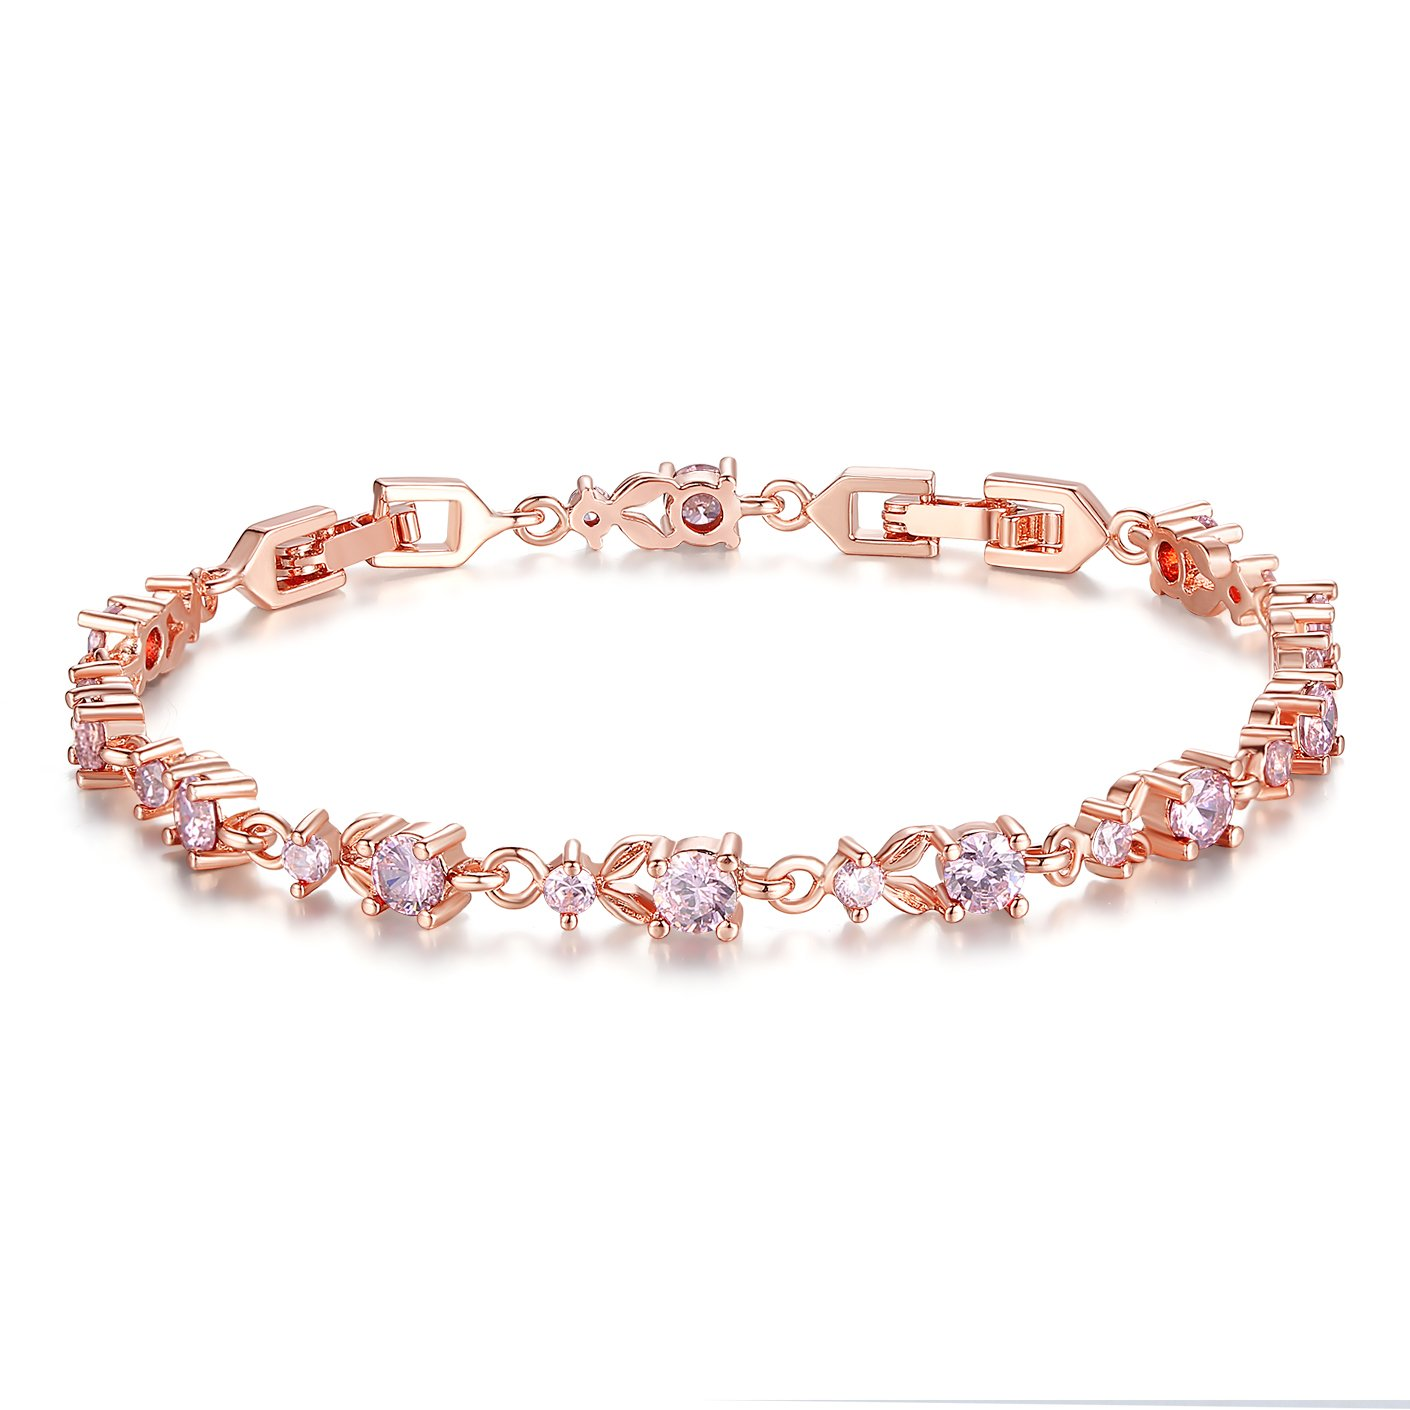 BAMOER Luxury Slender Rose Gold Plated Bracelet with Sparkling Pink Cubic Zirconia Stones